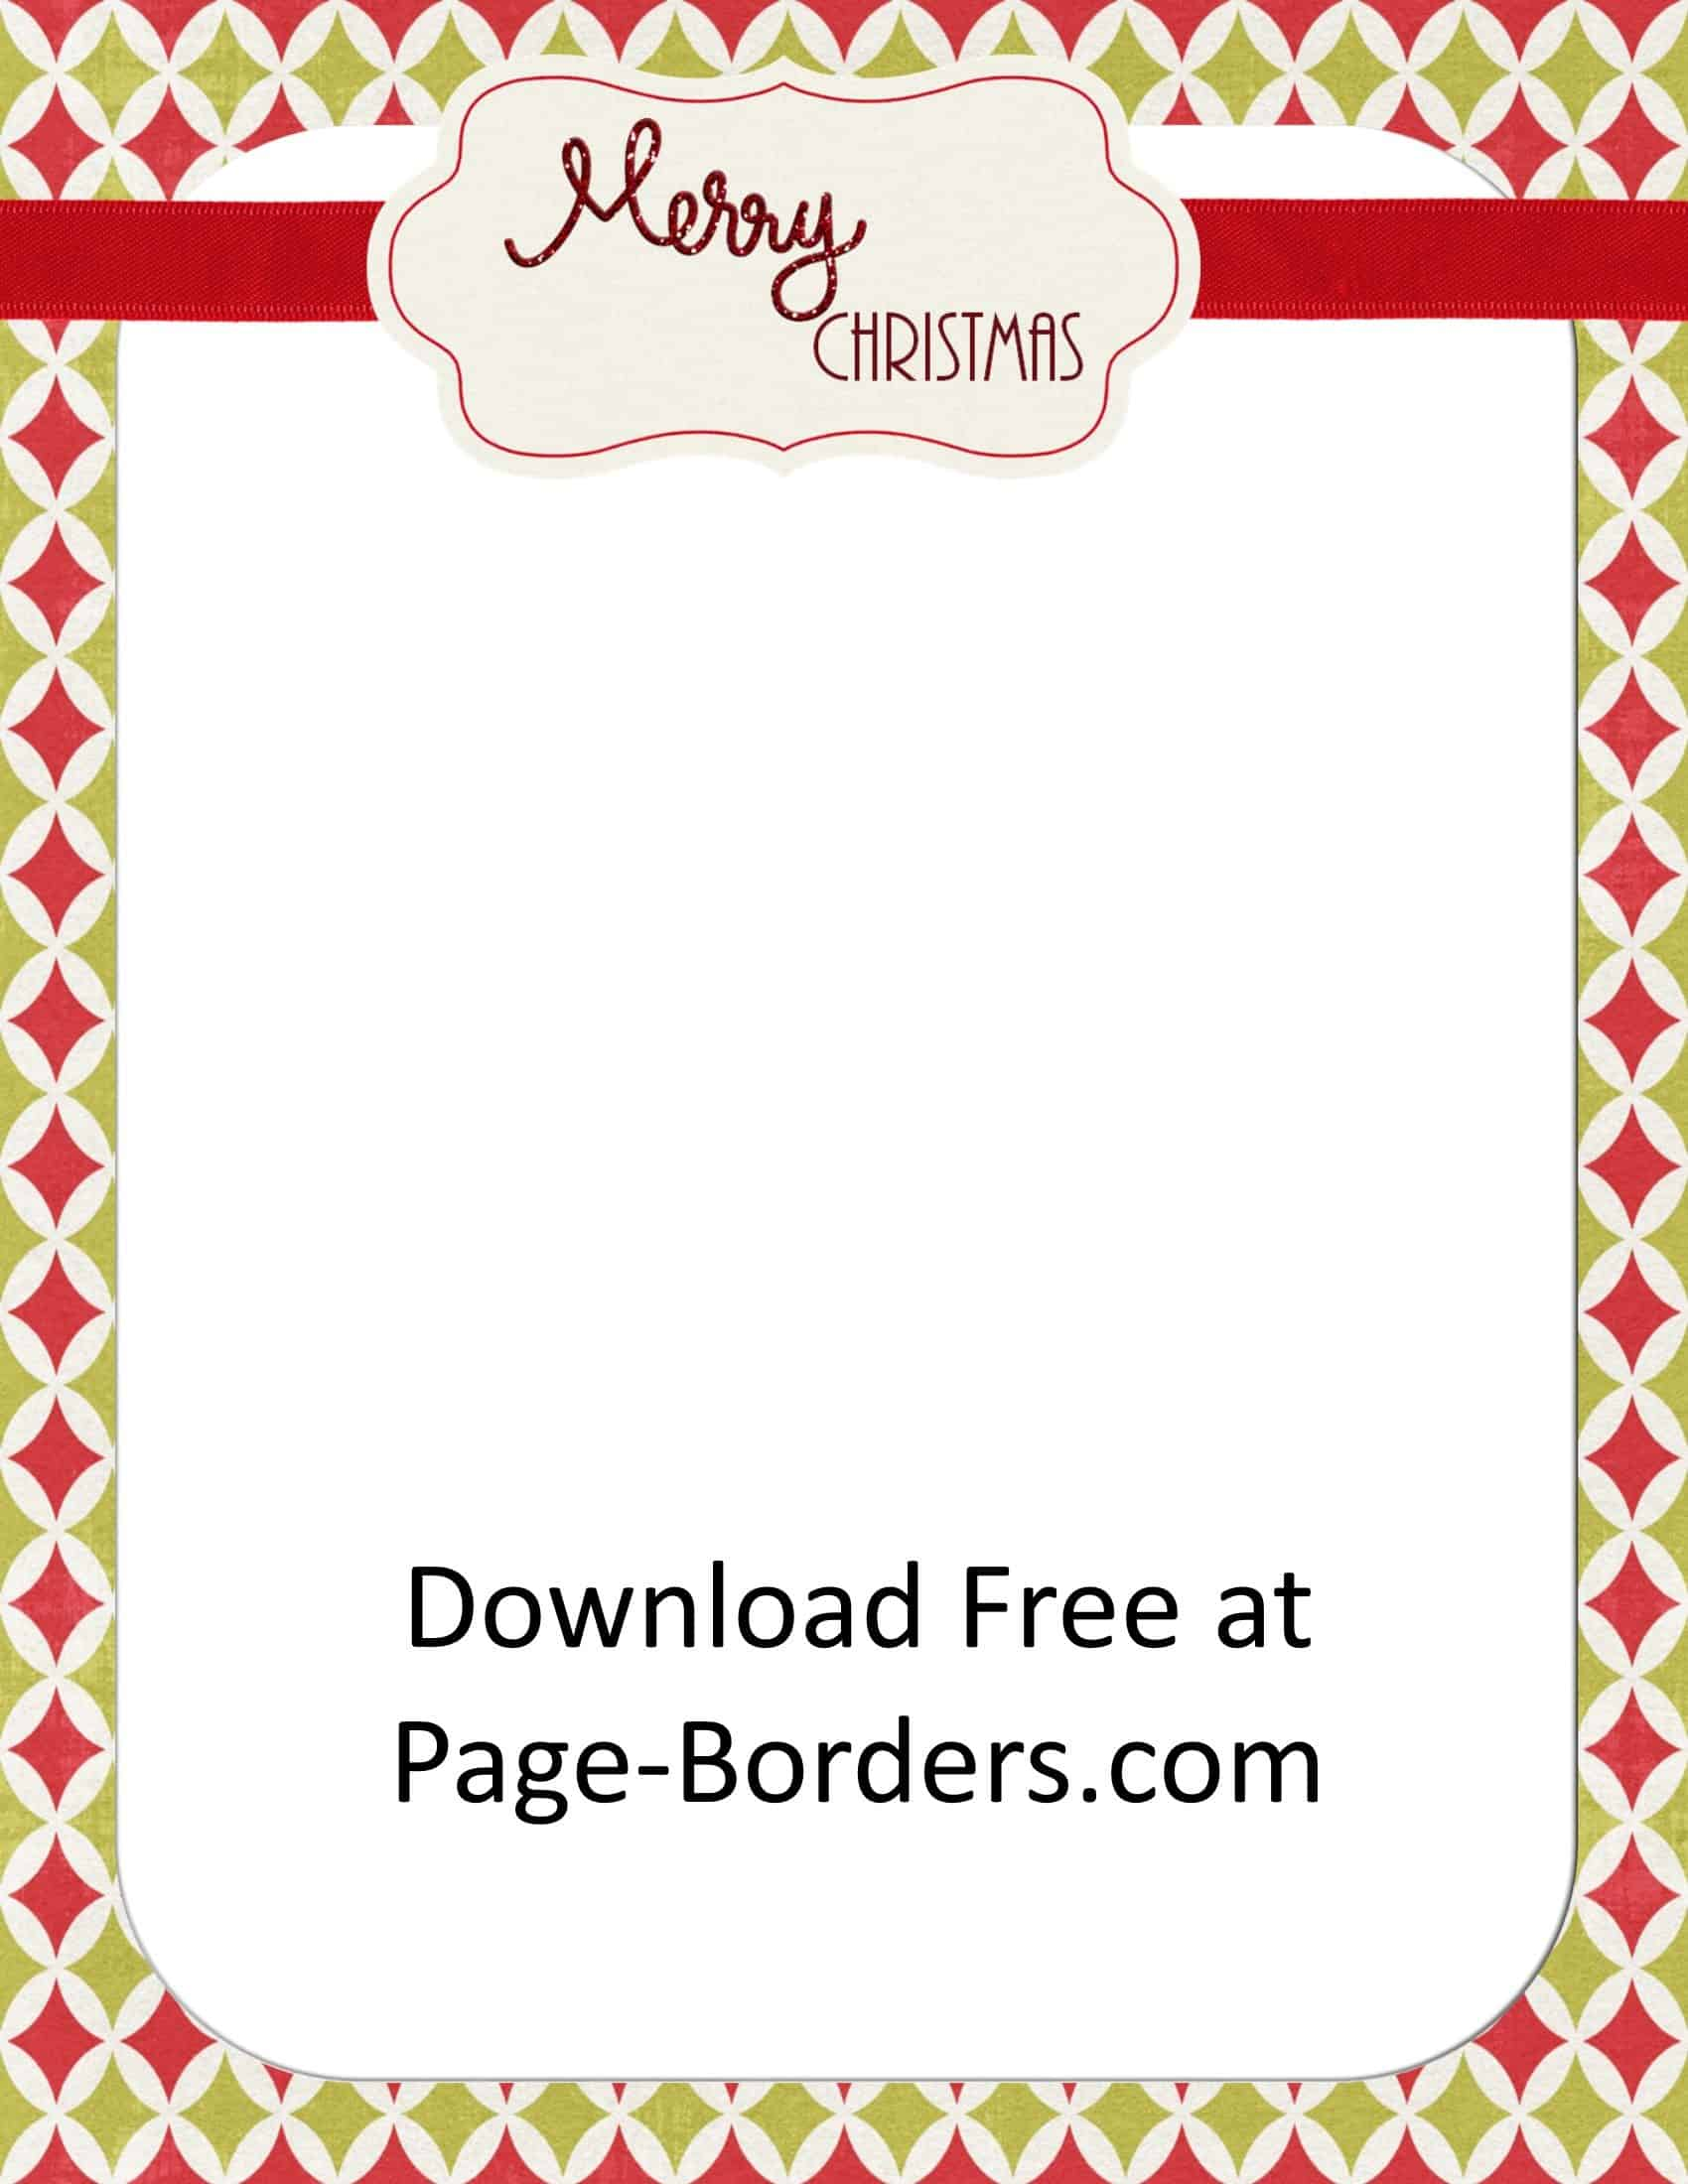 How to Add Christmas Clipart to Your Border